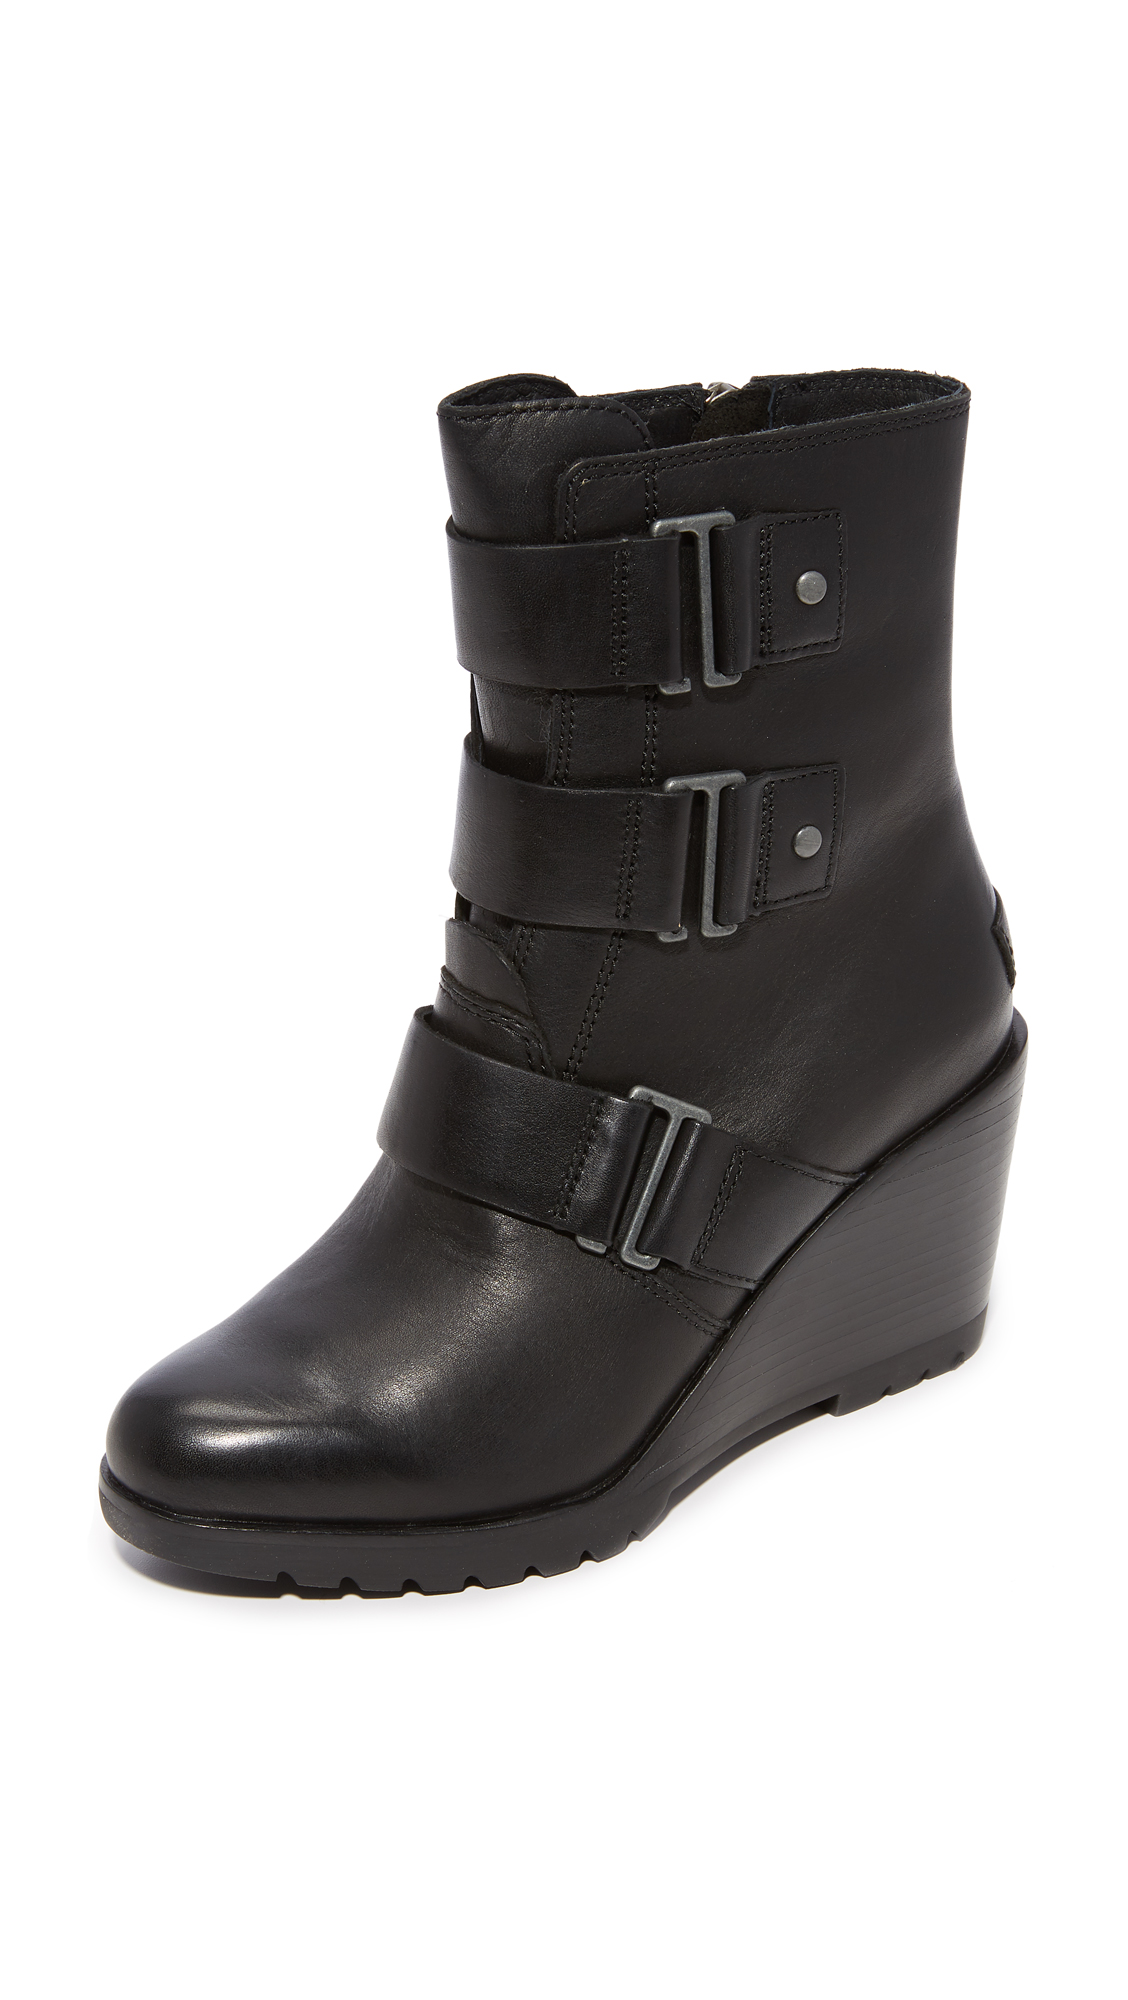 Sorel After Hours Booties - Black